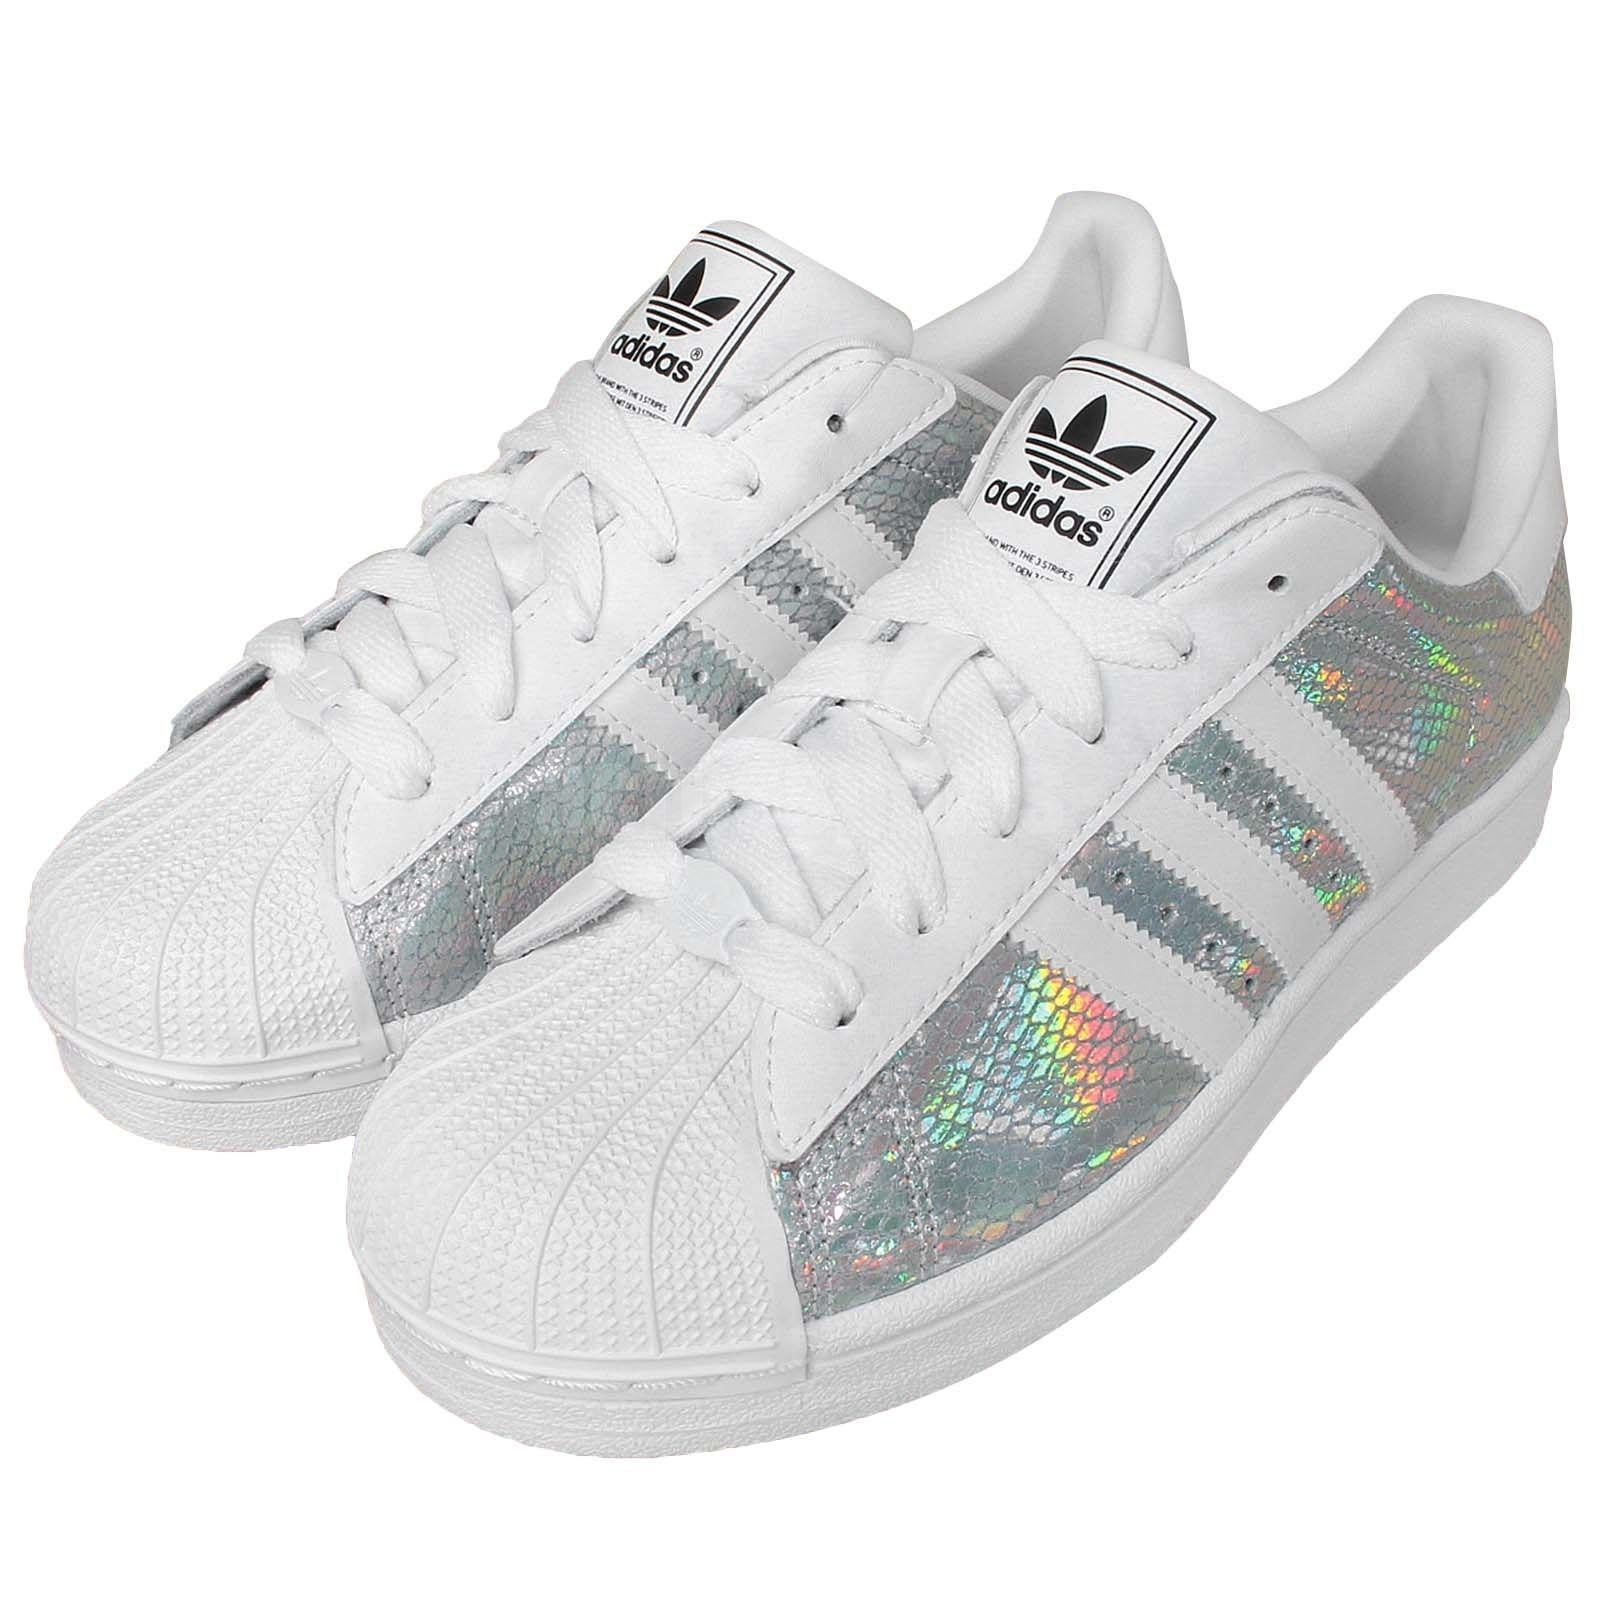 adidas Originals Superstar Foundation Ftwr White B27141 Lifestyle